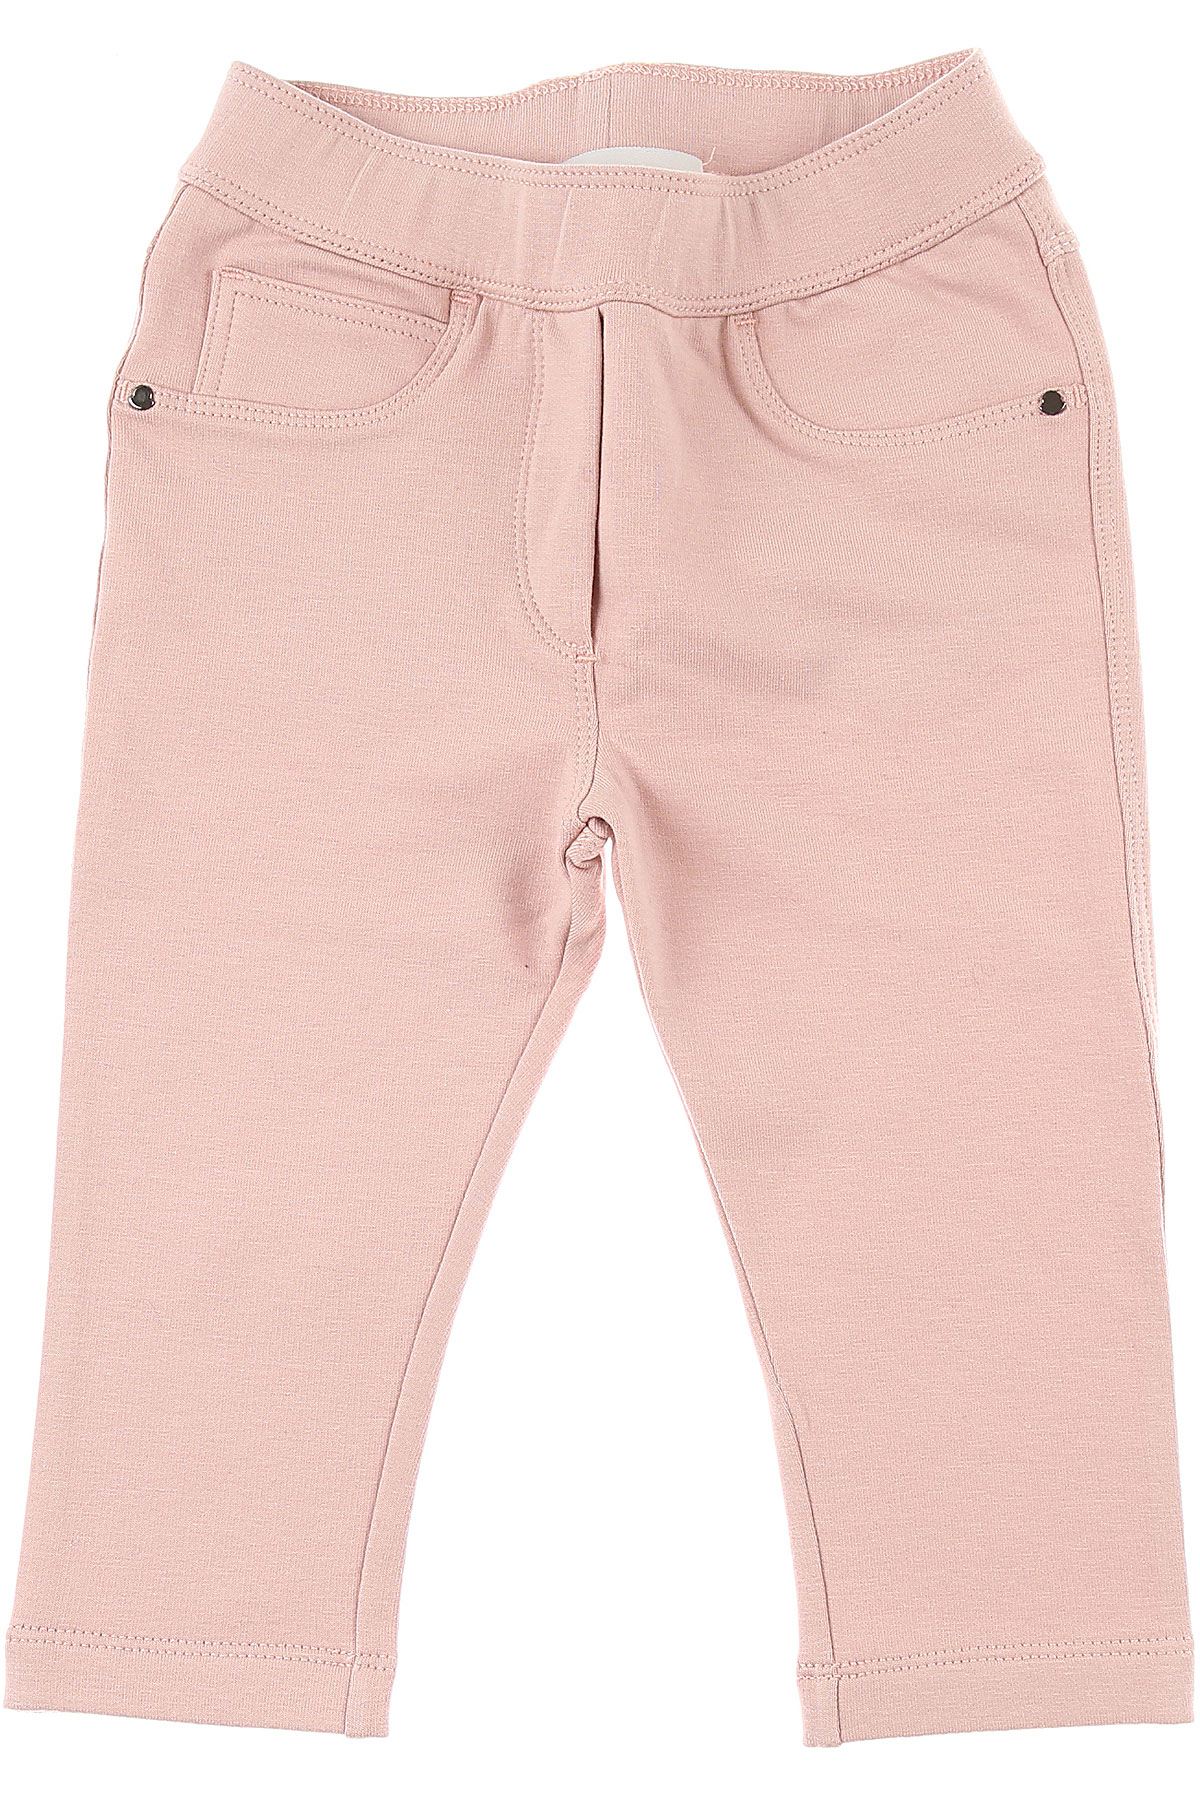 Moncler Baby Pants for Girls On Sale in Outlet, Pink, Cotton, 2019, 12M 24M 9M